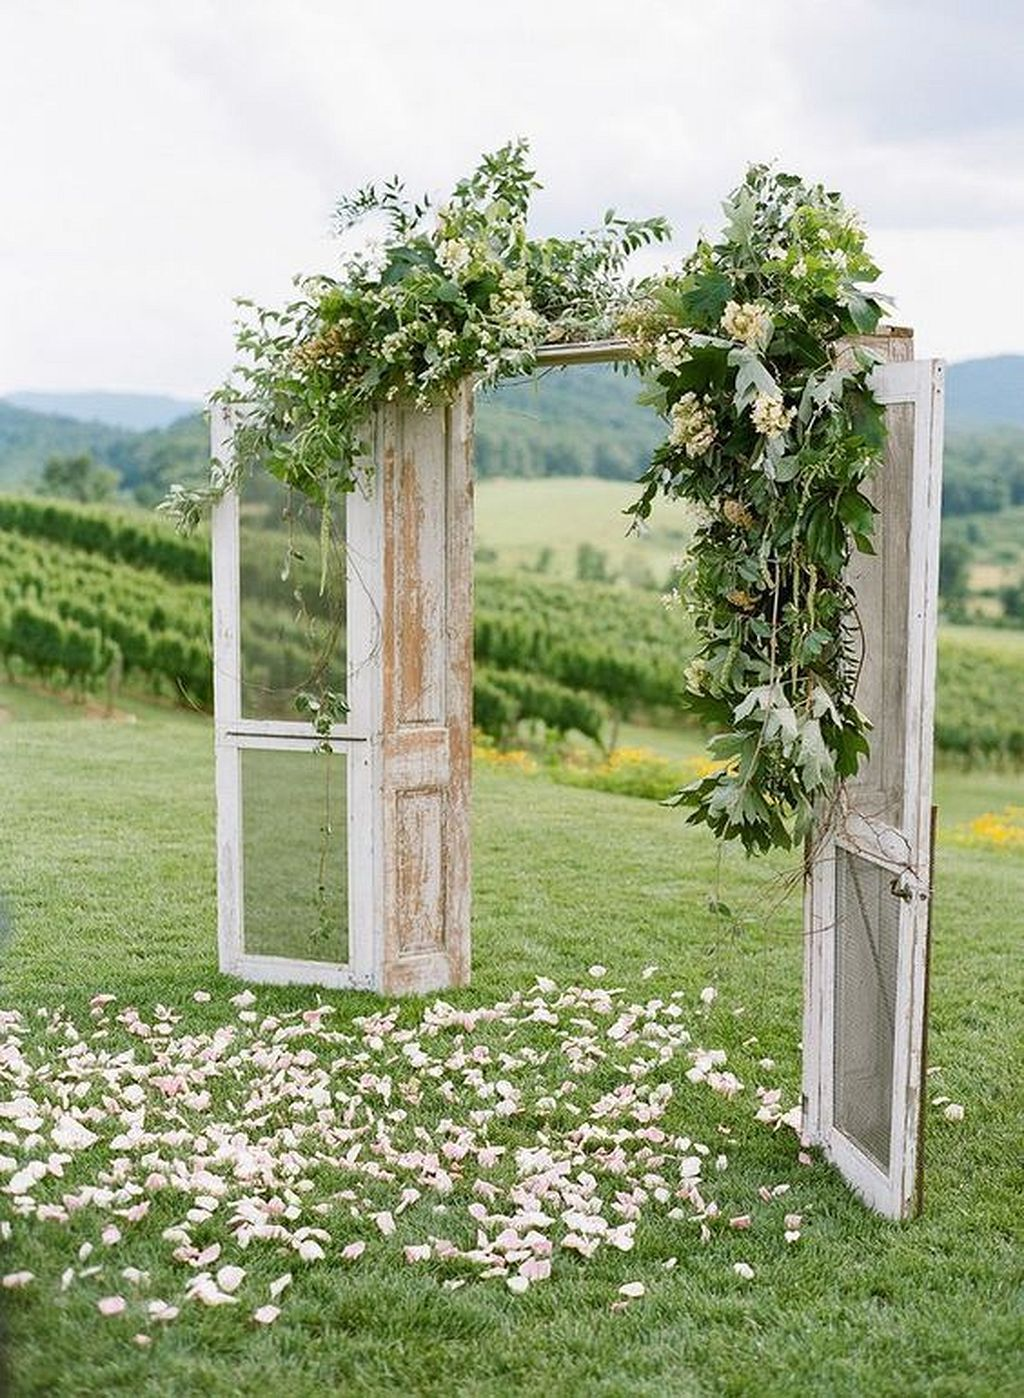 97 floral wedding arch decoration ideas floral wedding wedding 97 floral wedding arch decoration ideas junglespirit Choice Image